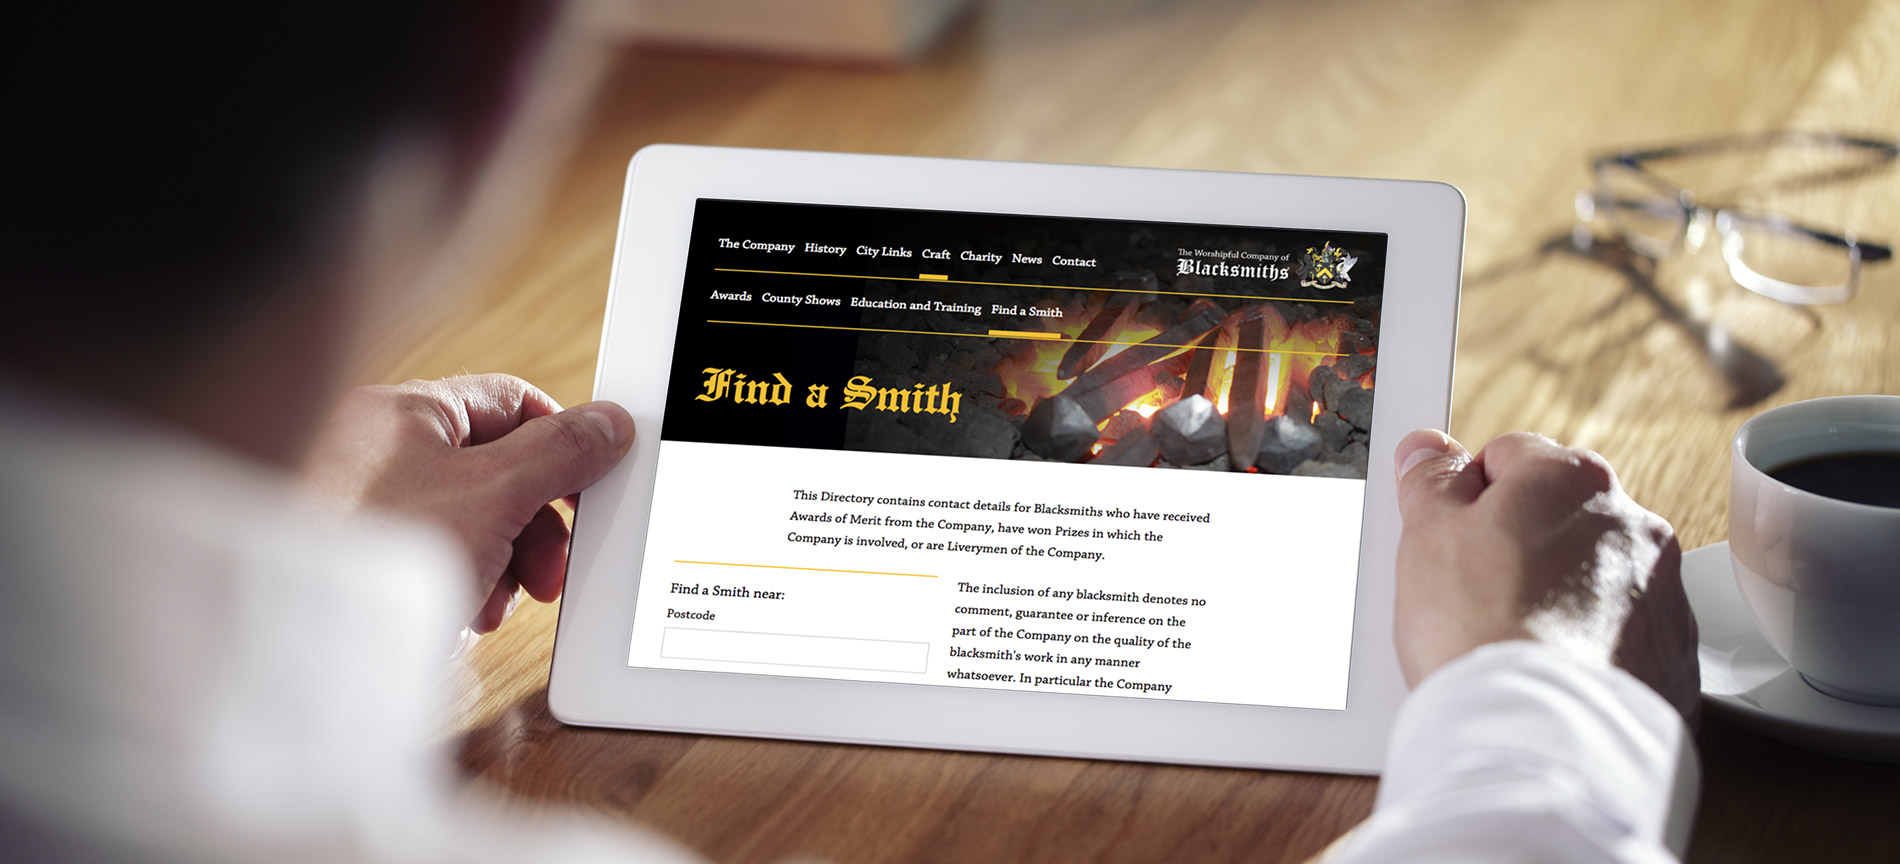 The Worshipful Company of Blacksmiths website - desktop